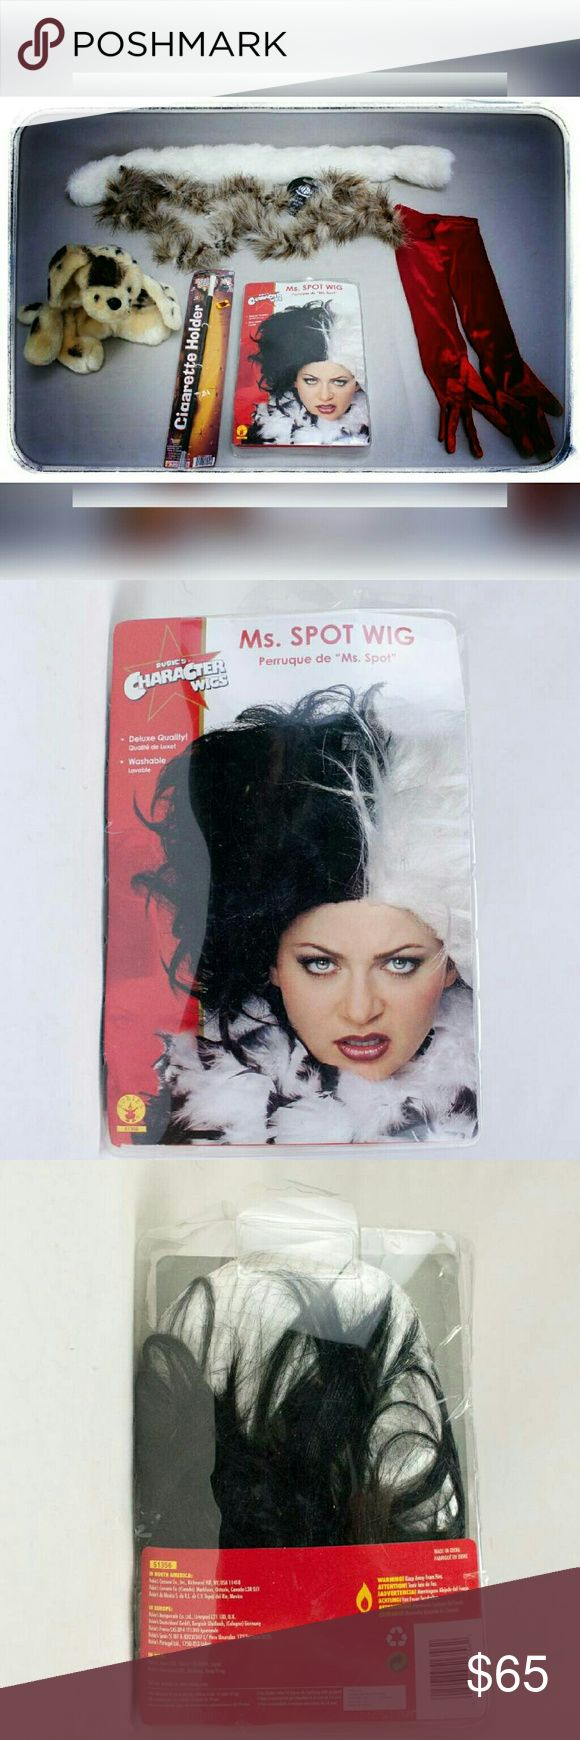 Cruella DeVille Halloween Costume No Dress or Shoe Cruella de Vil Costume No Dress or Shoes, worn once. Find a cute black dress and red shoes! Accessories Hair Accessories